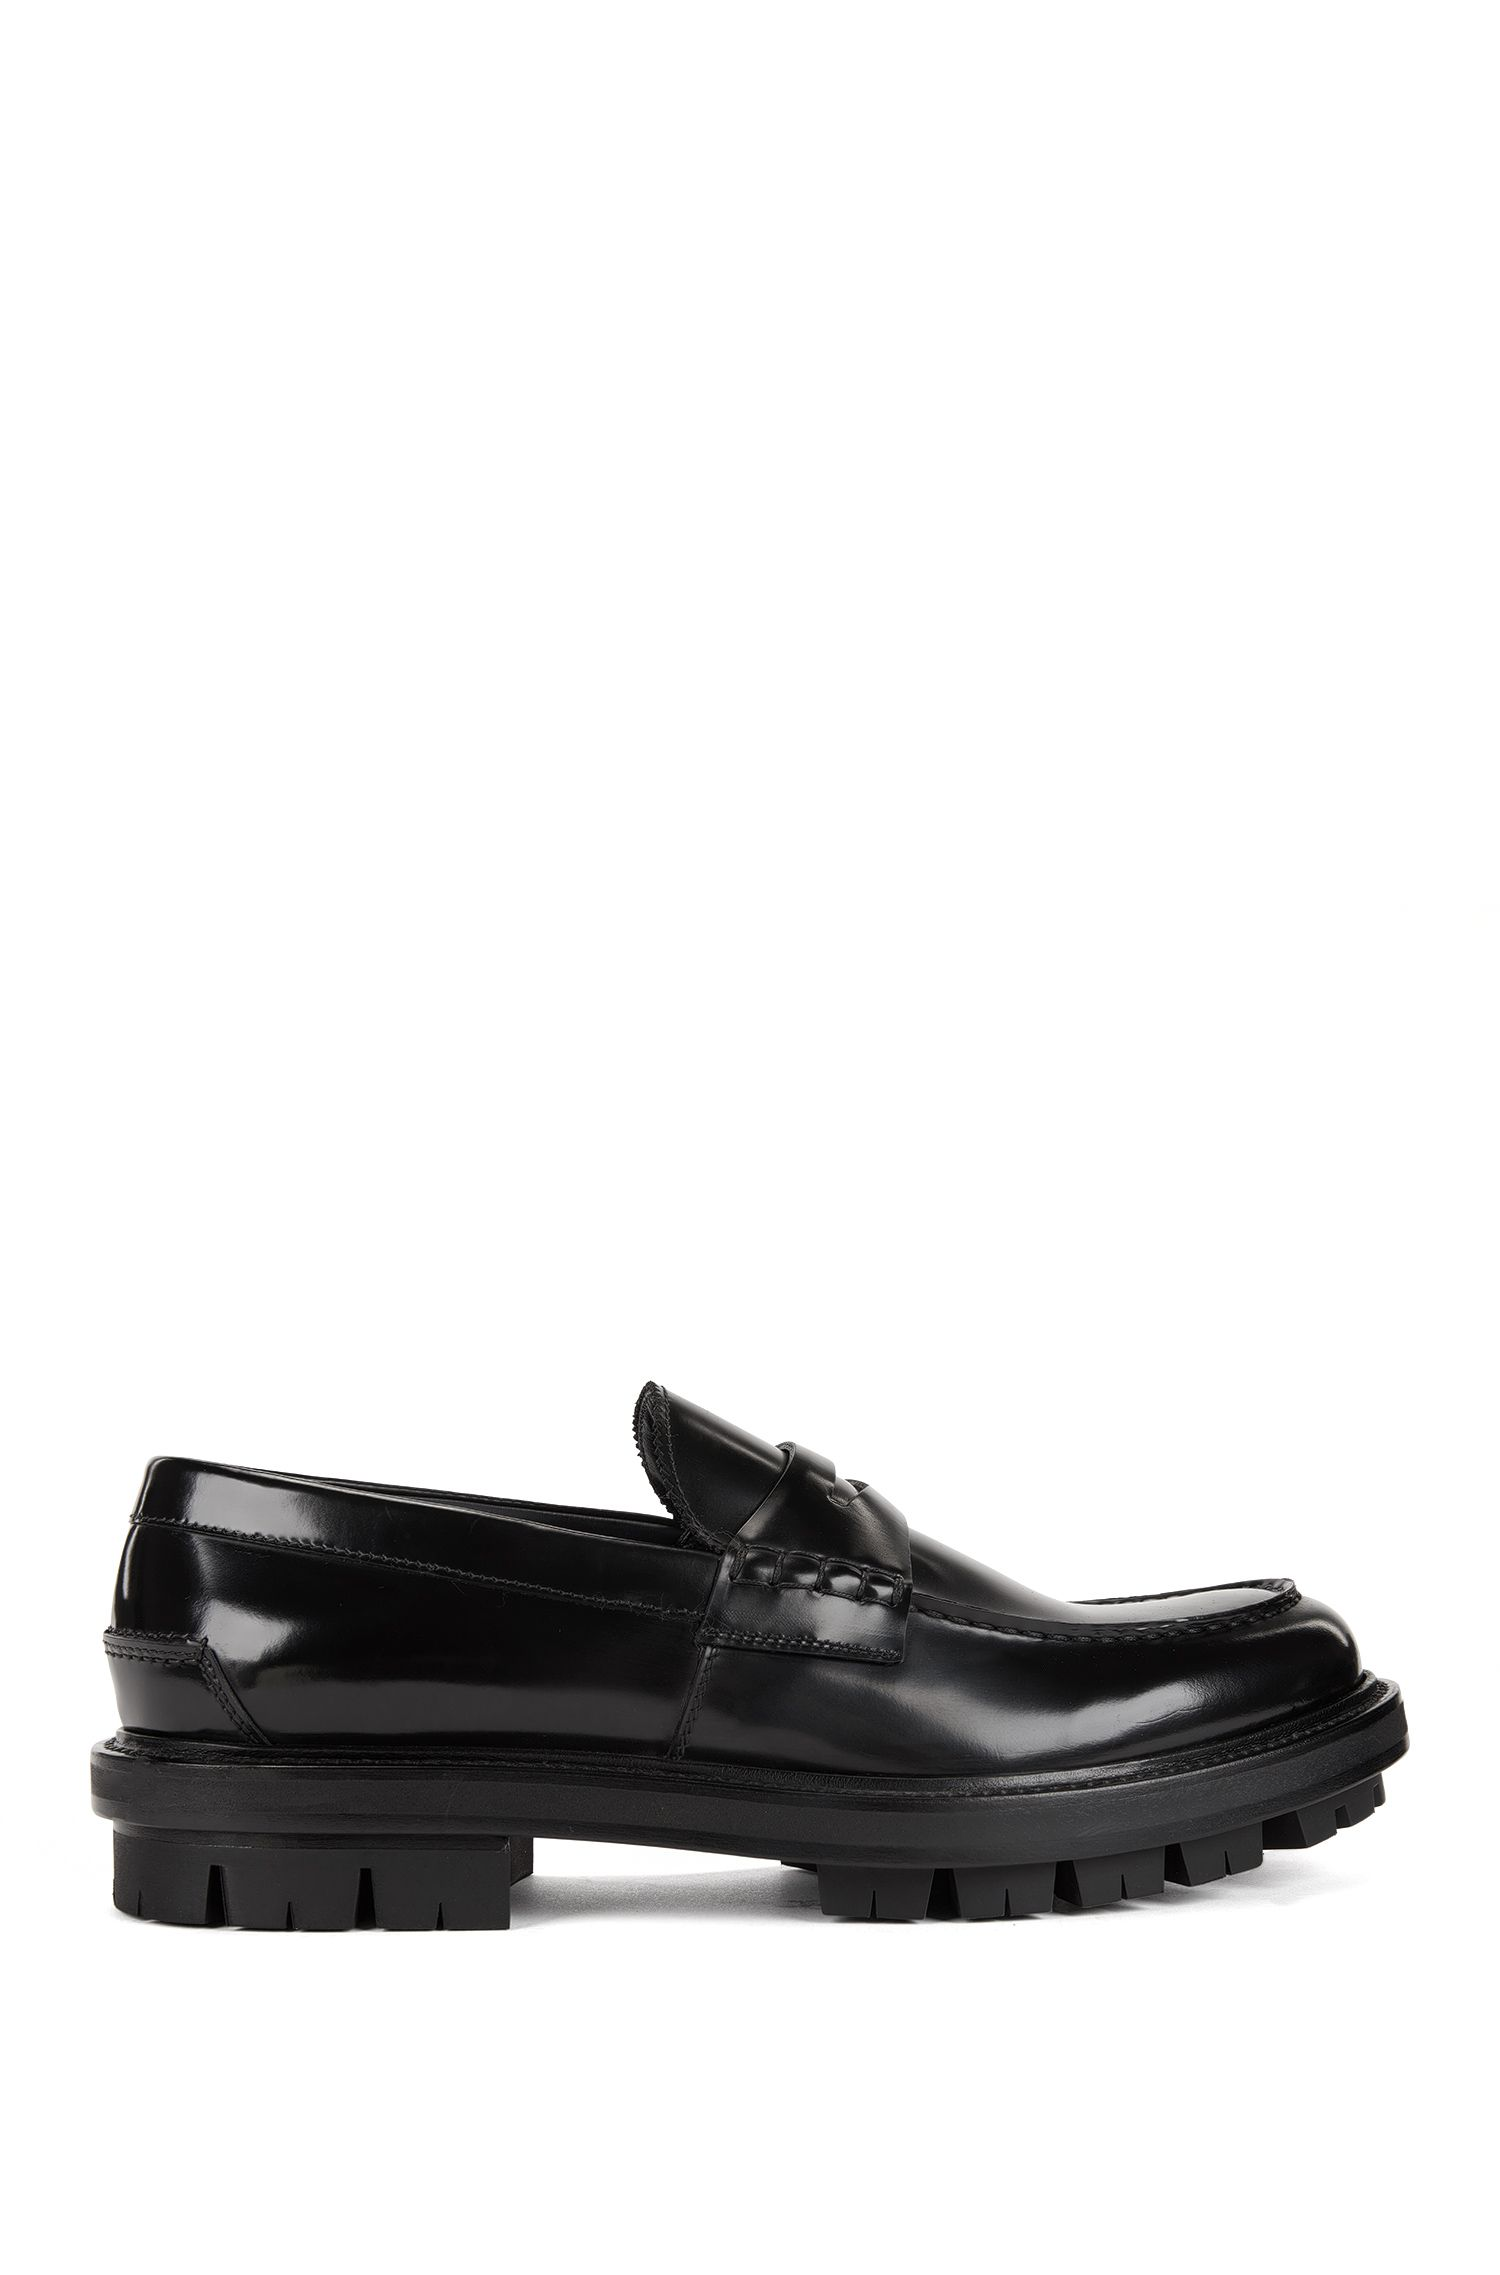 Leather Penny Loafer | Twist Mocc pe